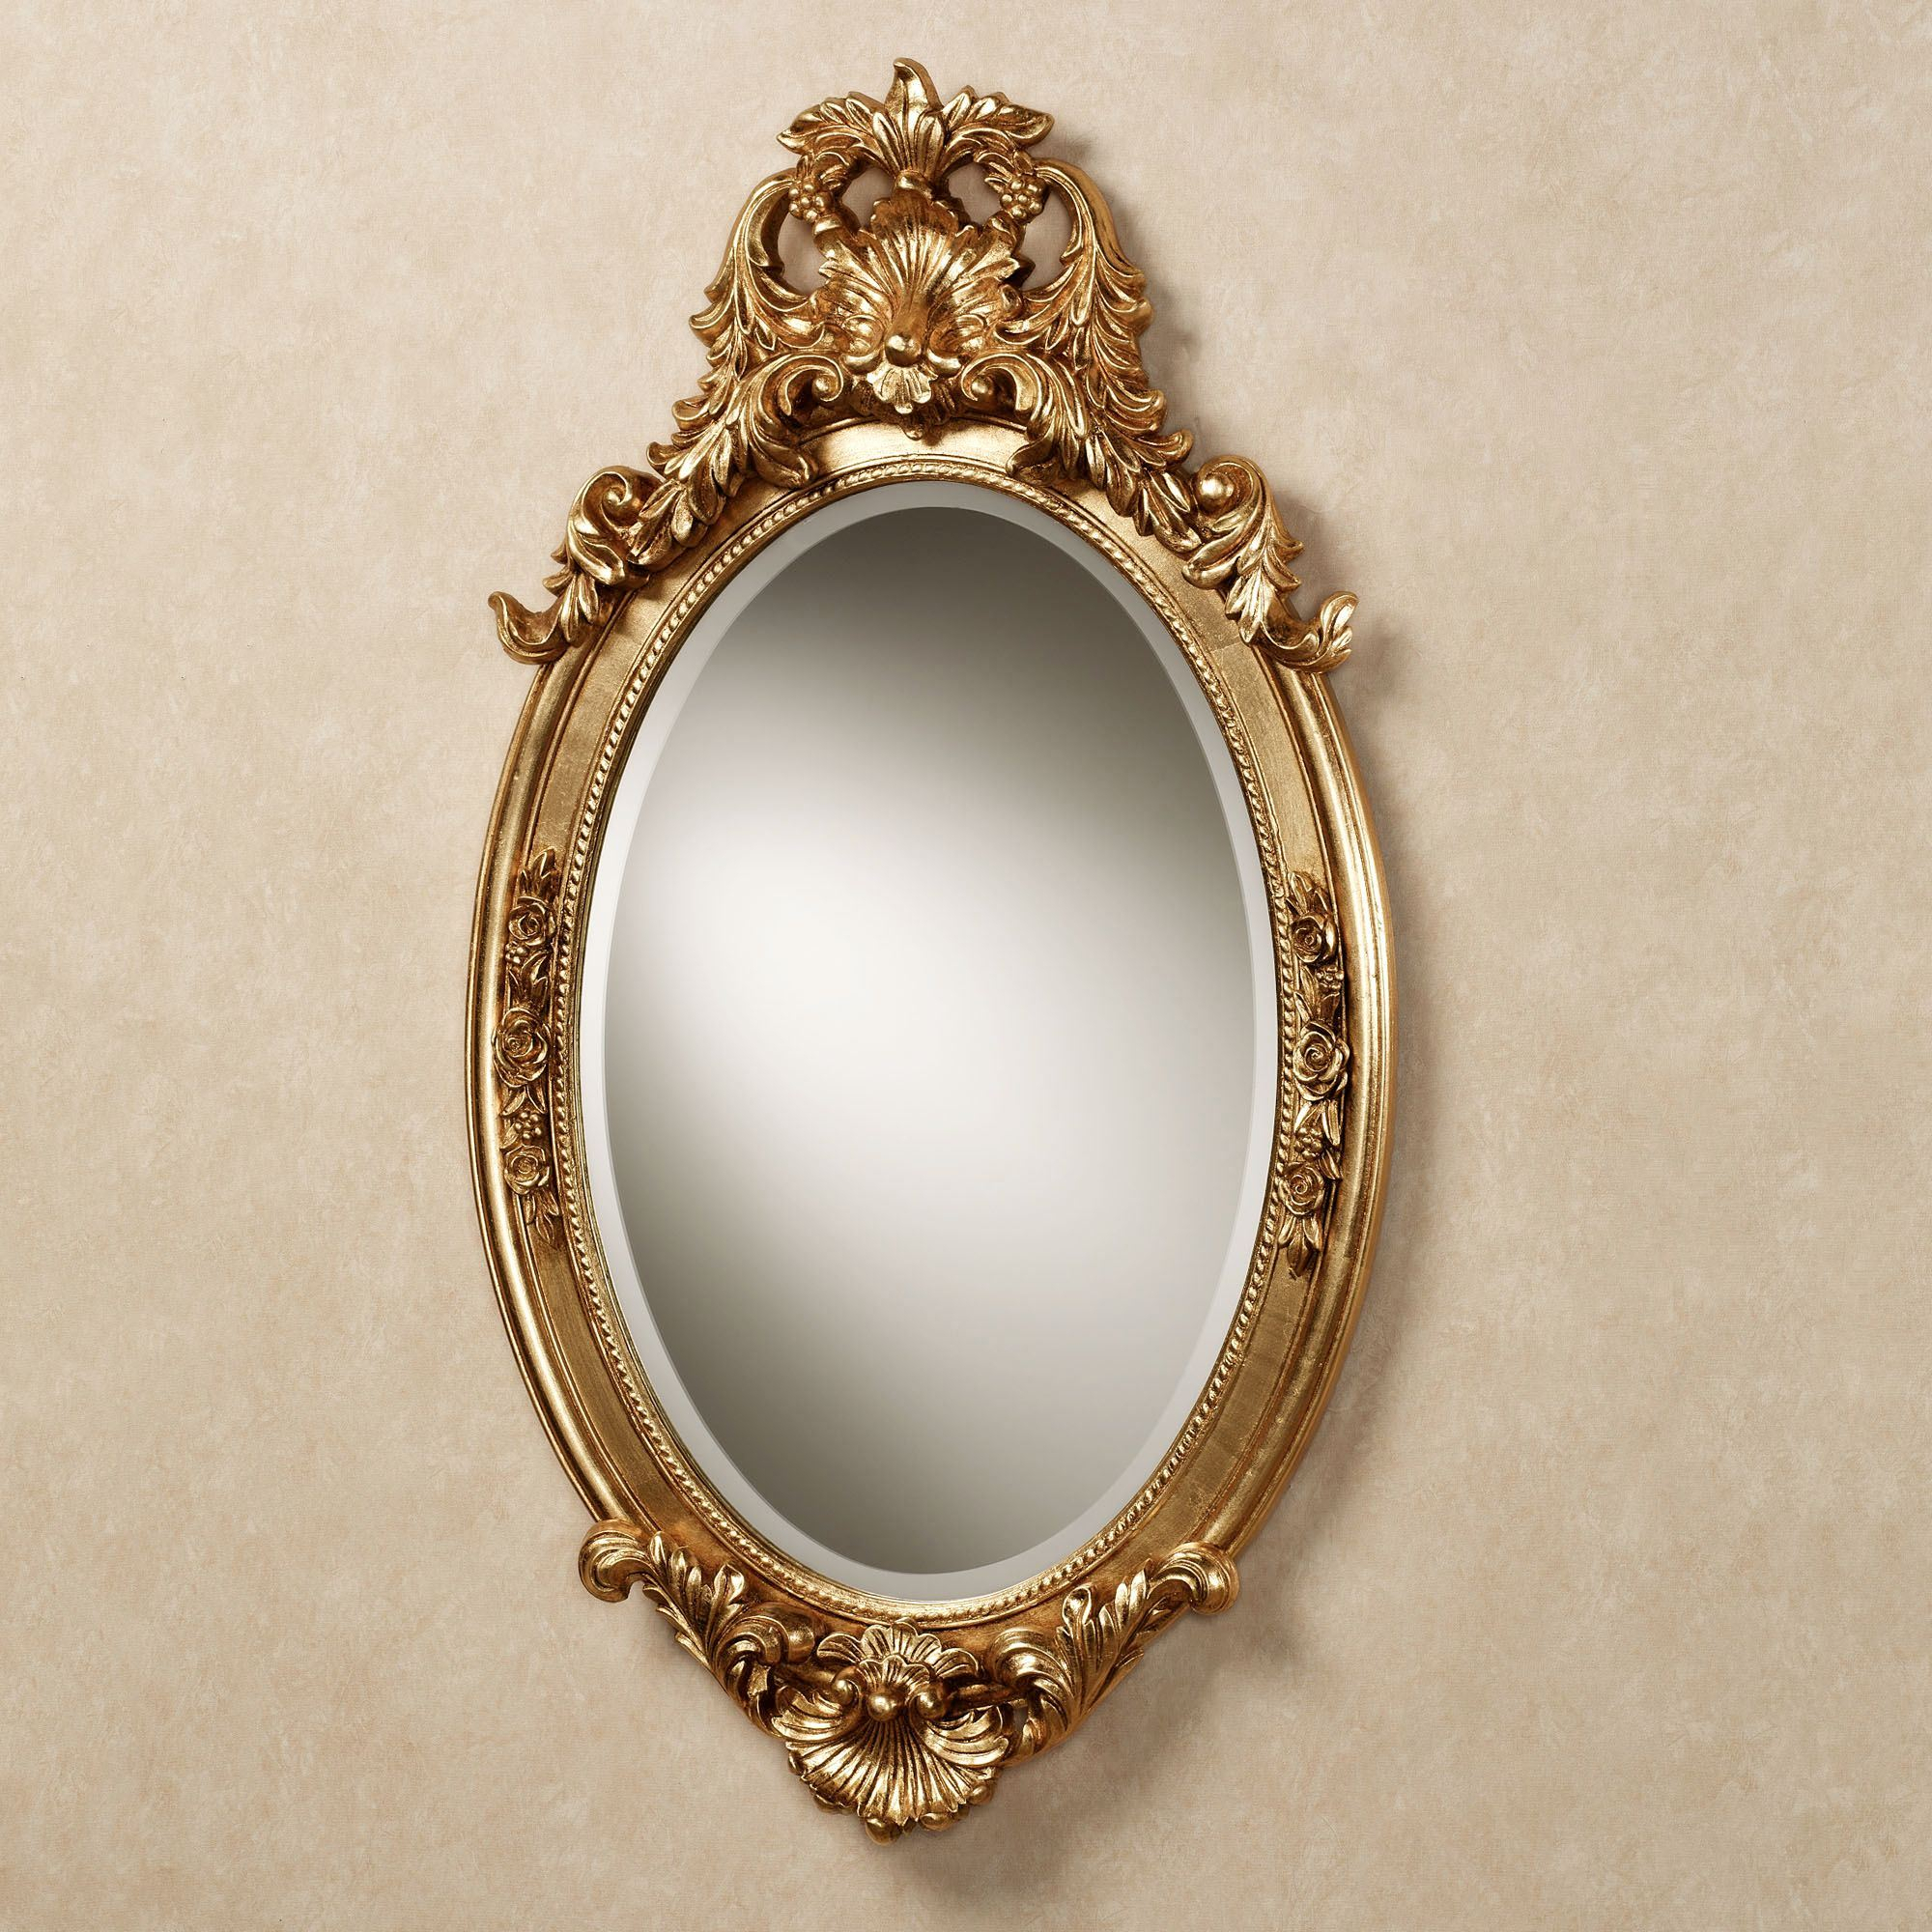 Hallandale Acanthus Leaf Oval Wall Mirror For Traditional Accent Mirrors (Image 4 of 20)